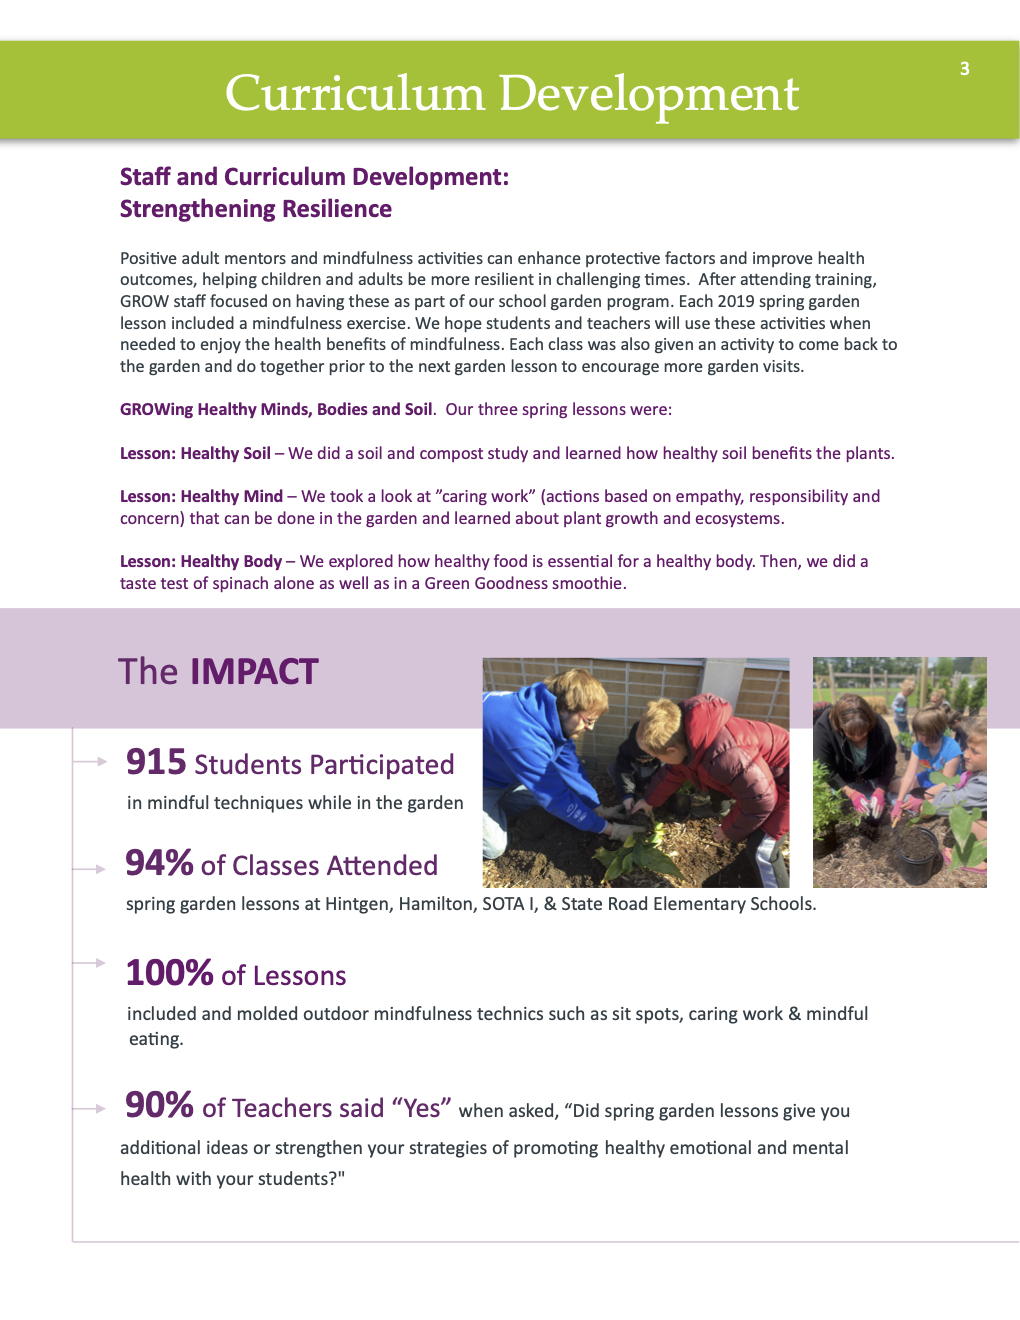 Annual Report 2019 curriculum